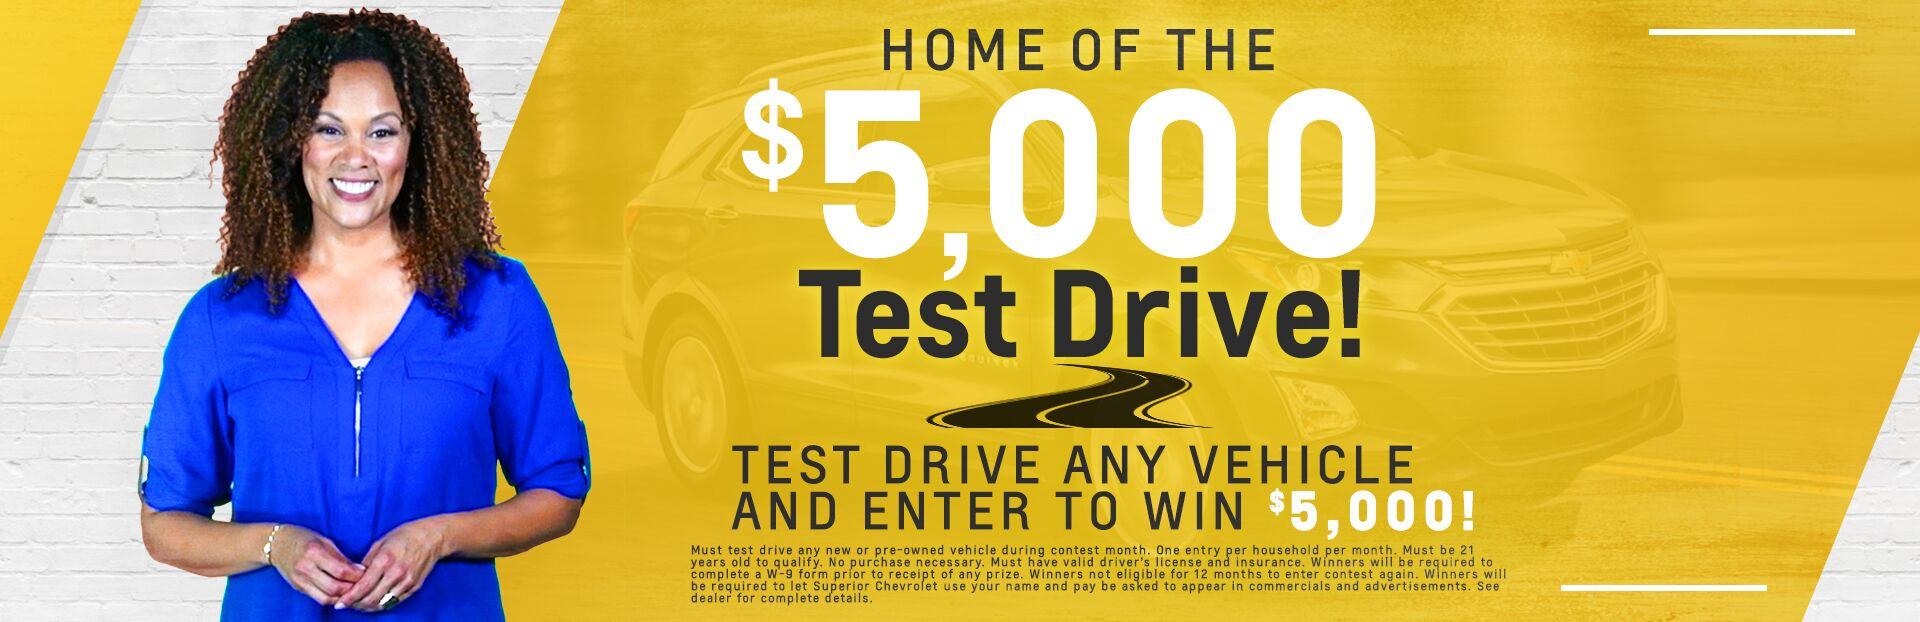 Home of the $5,000 Test Drive!